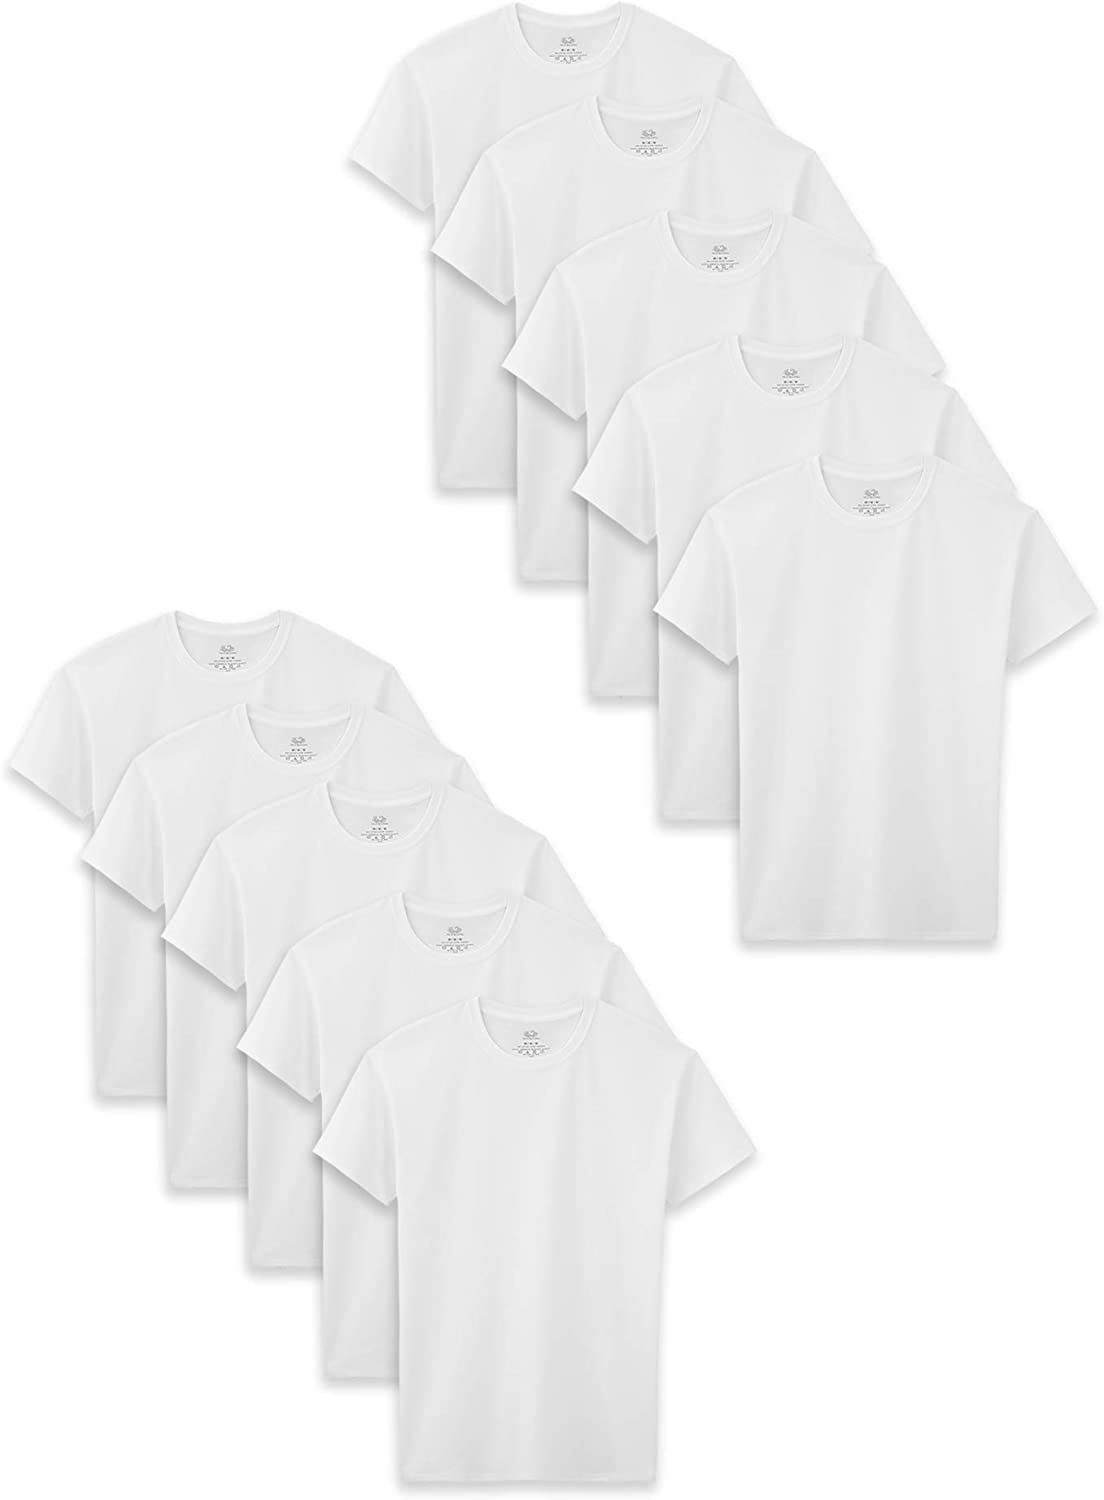 Fruit of the Loom Boys' Cotton White T Shirt: Clothing